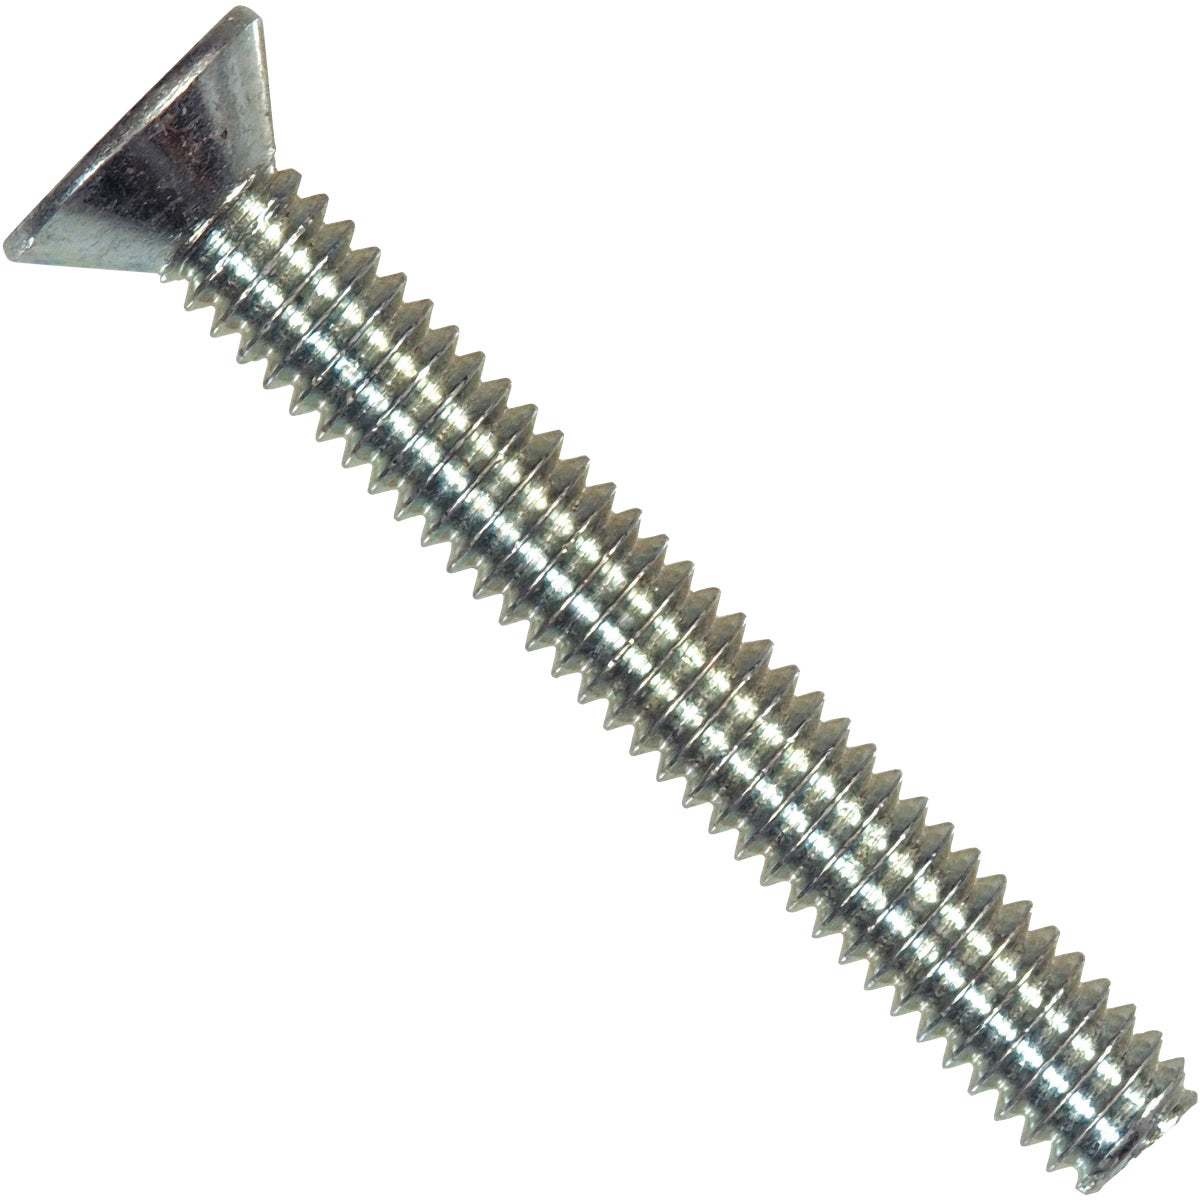 6-32X1-1/2 FH MACH SCREW - 101040 by Hillman Fastener